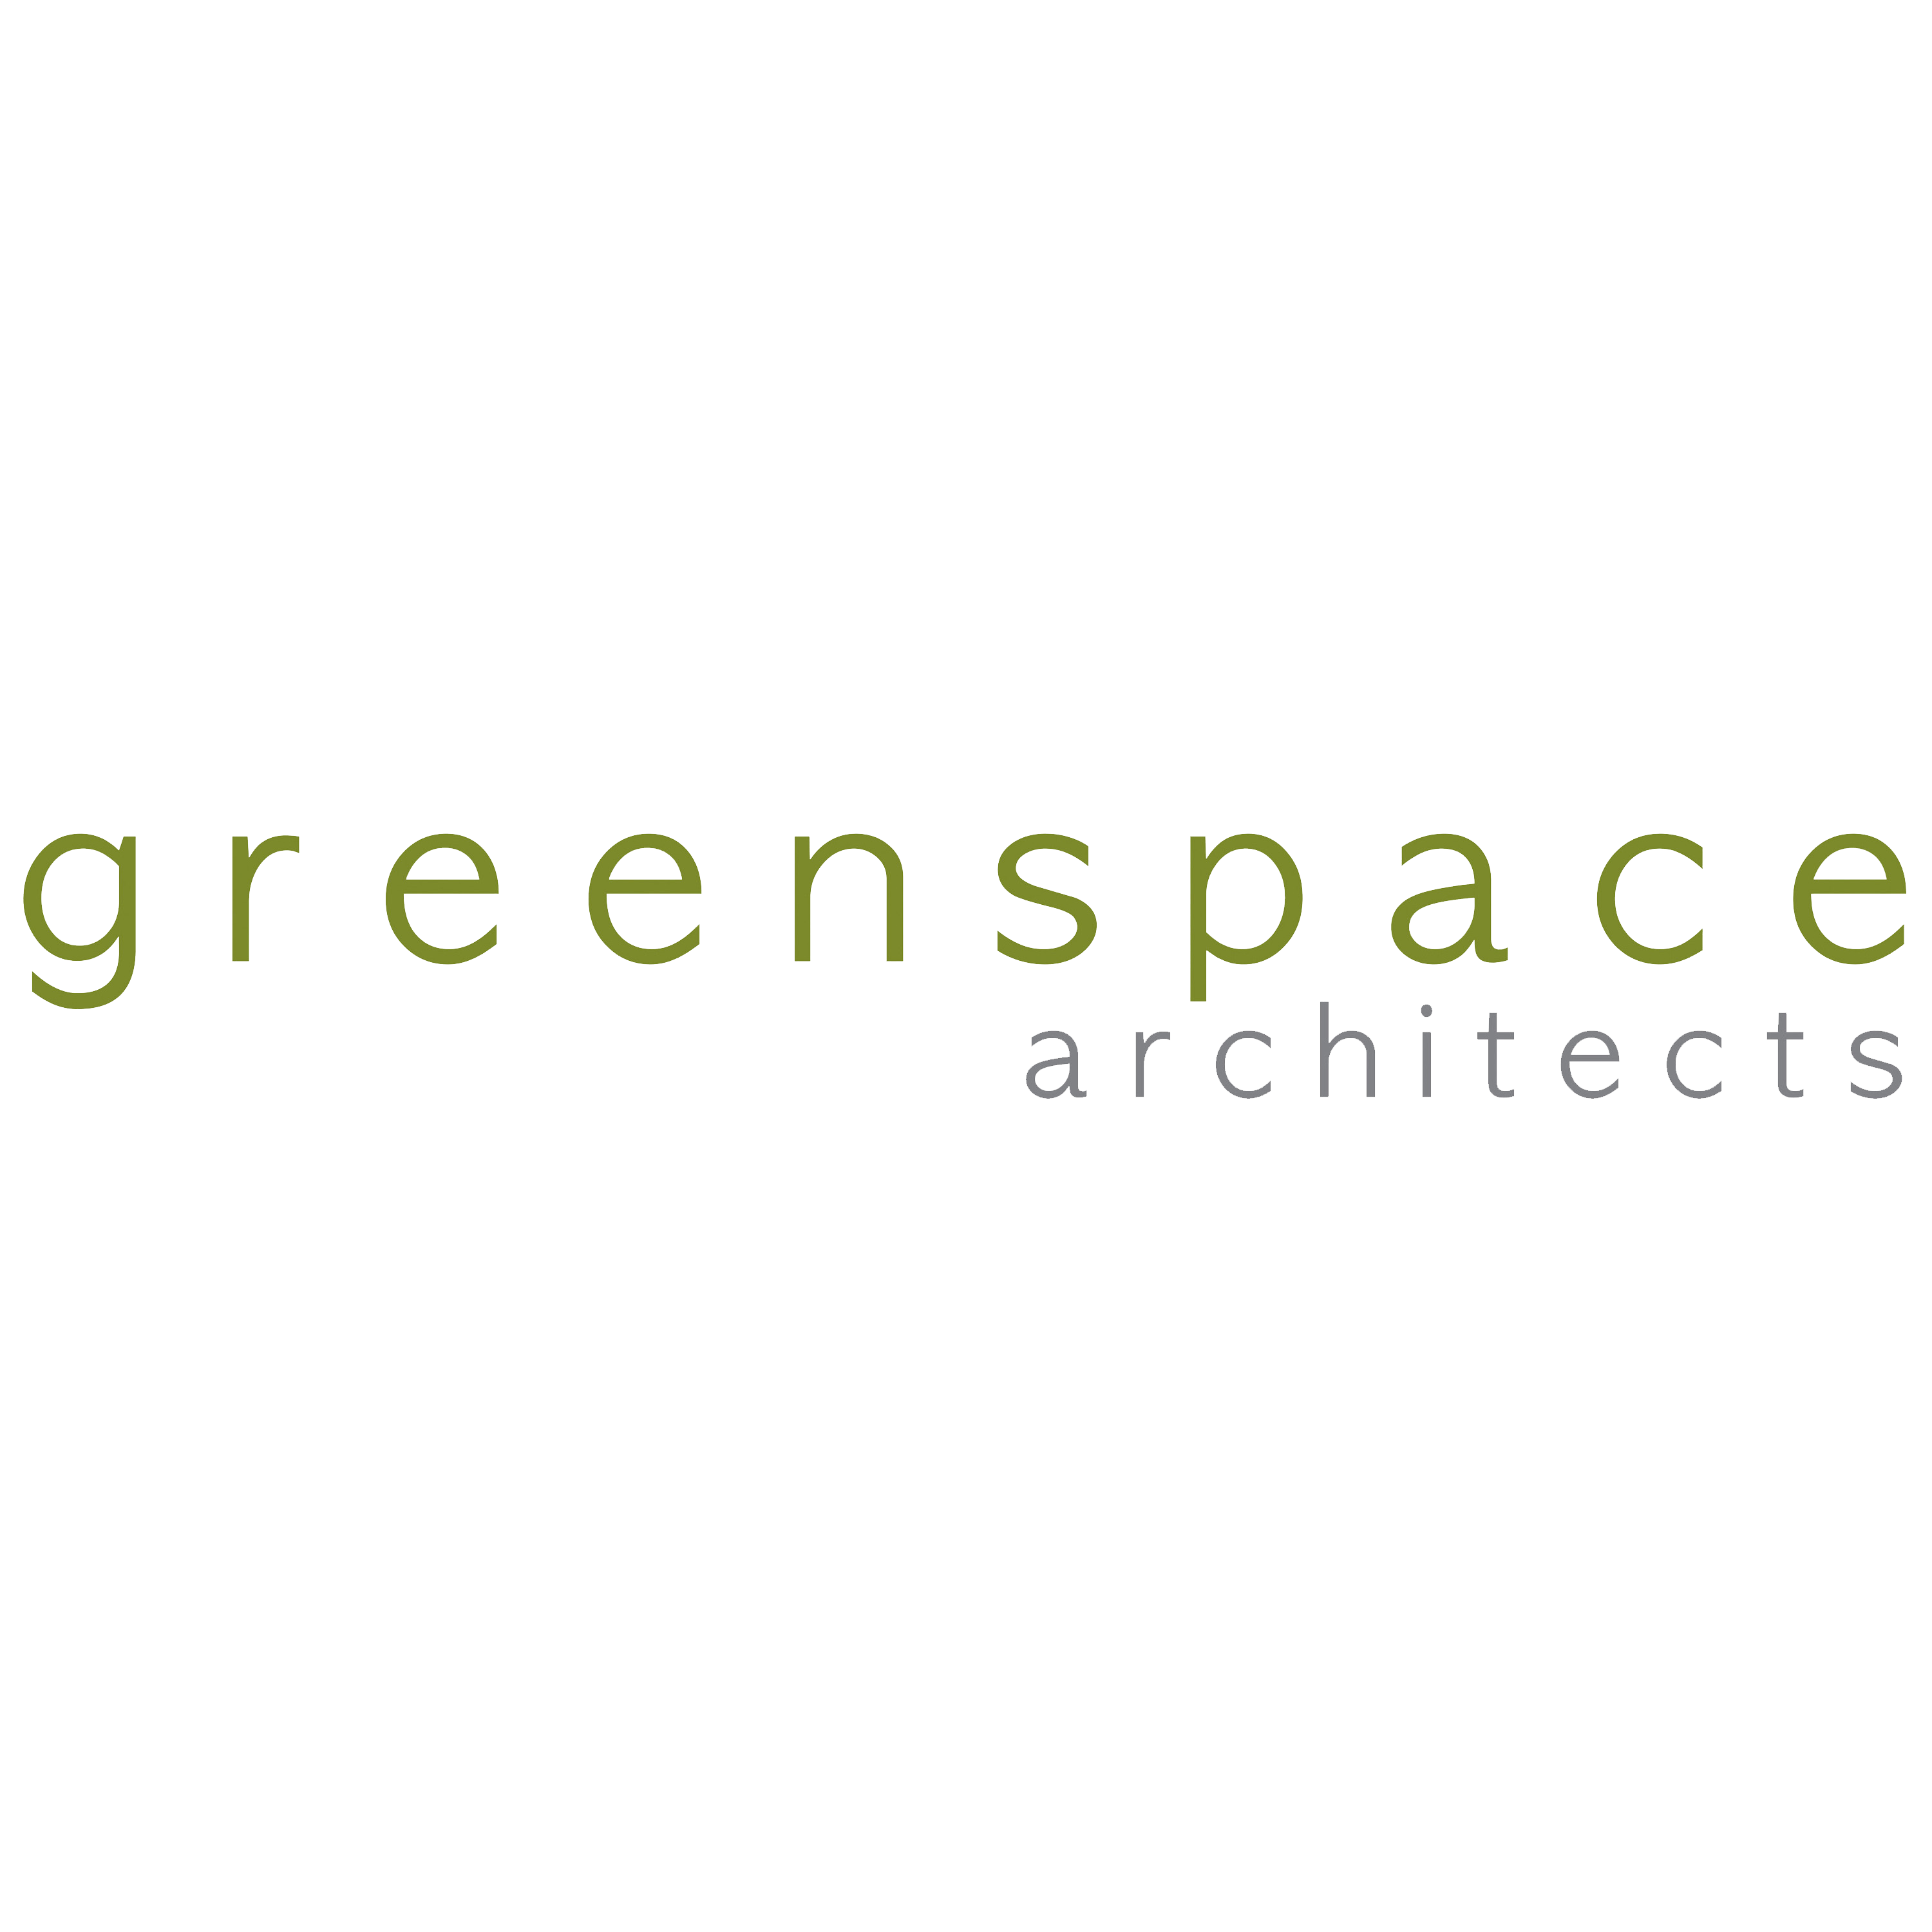 greenspace architects